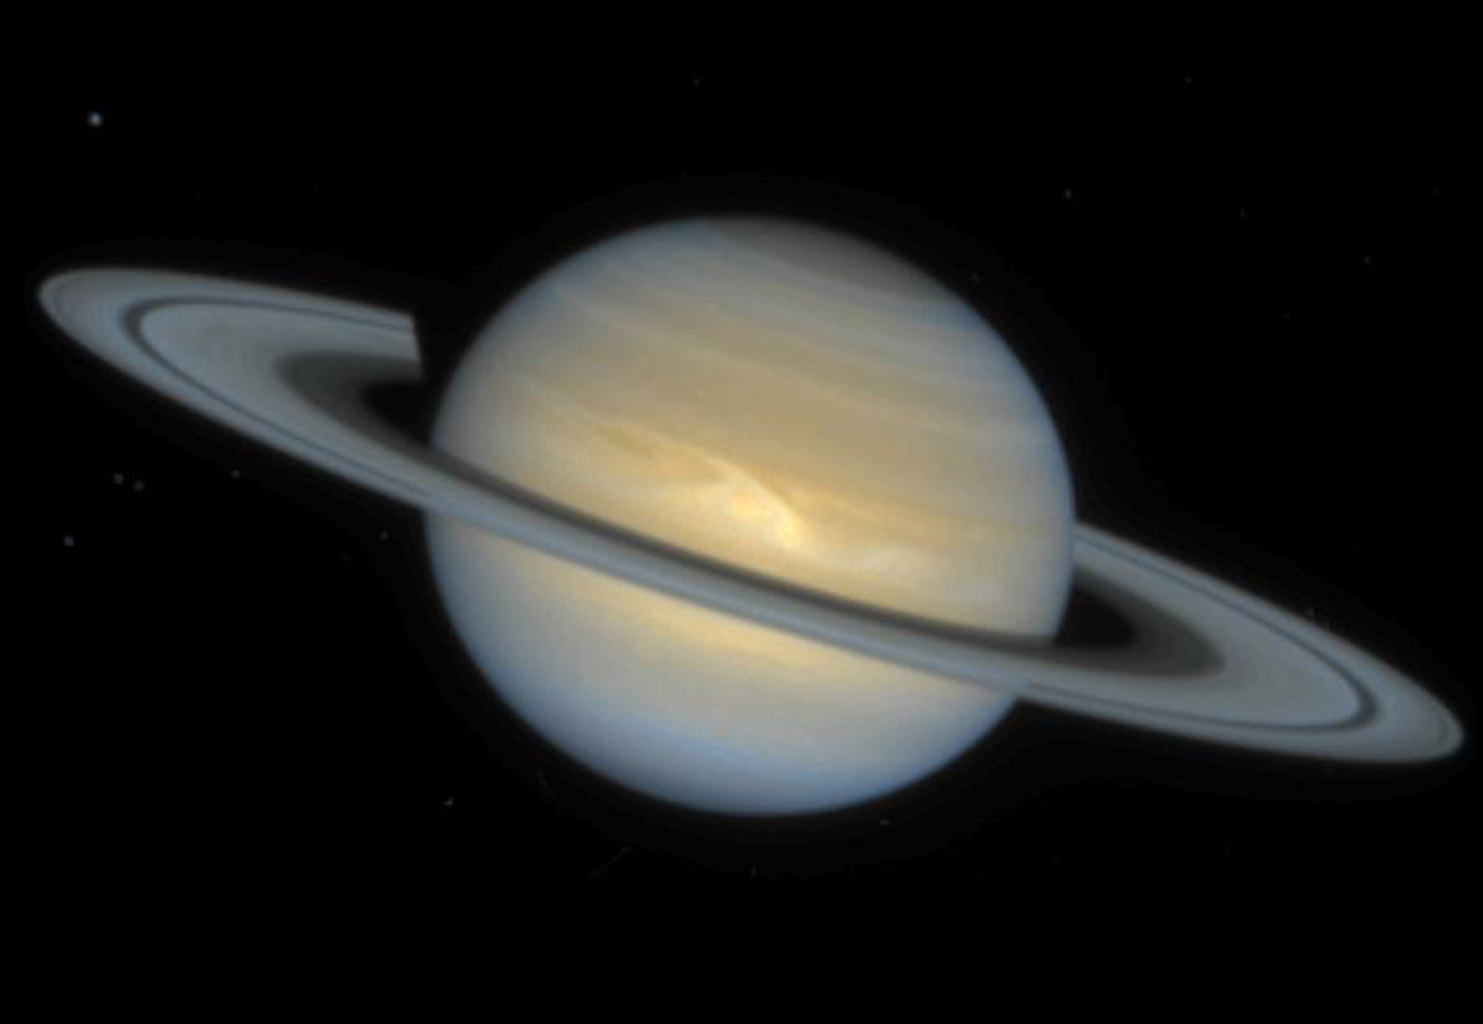 Space Images | Hubble Observes a New Saturn Storm